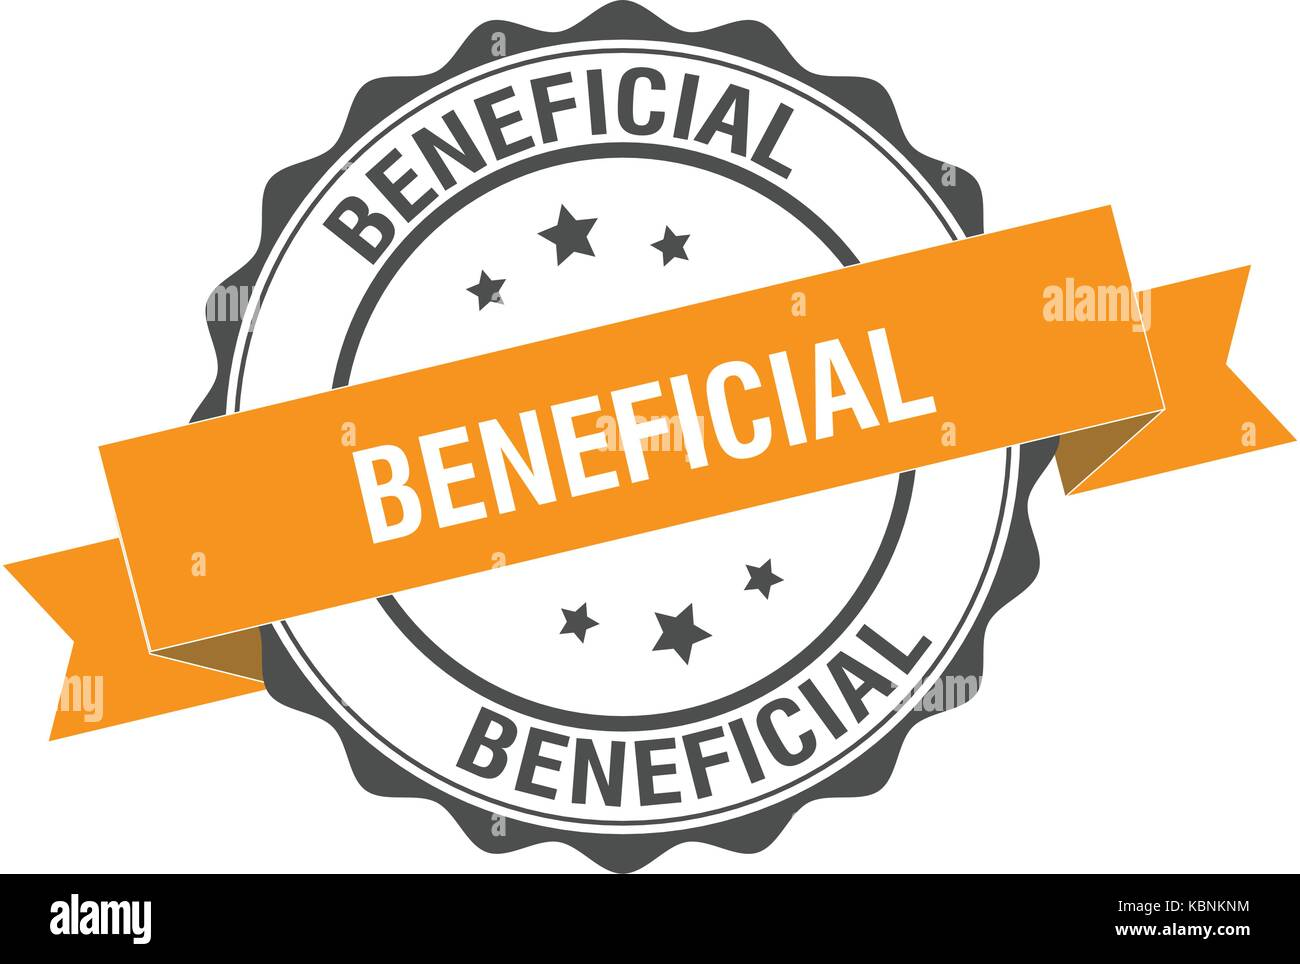 Beneficial stamp illustration - Stock Image